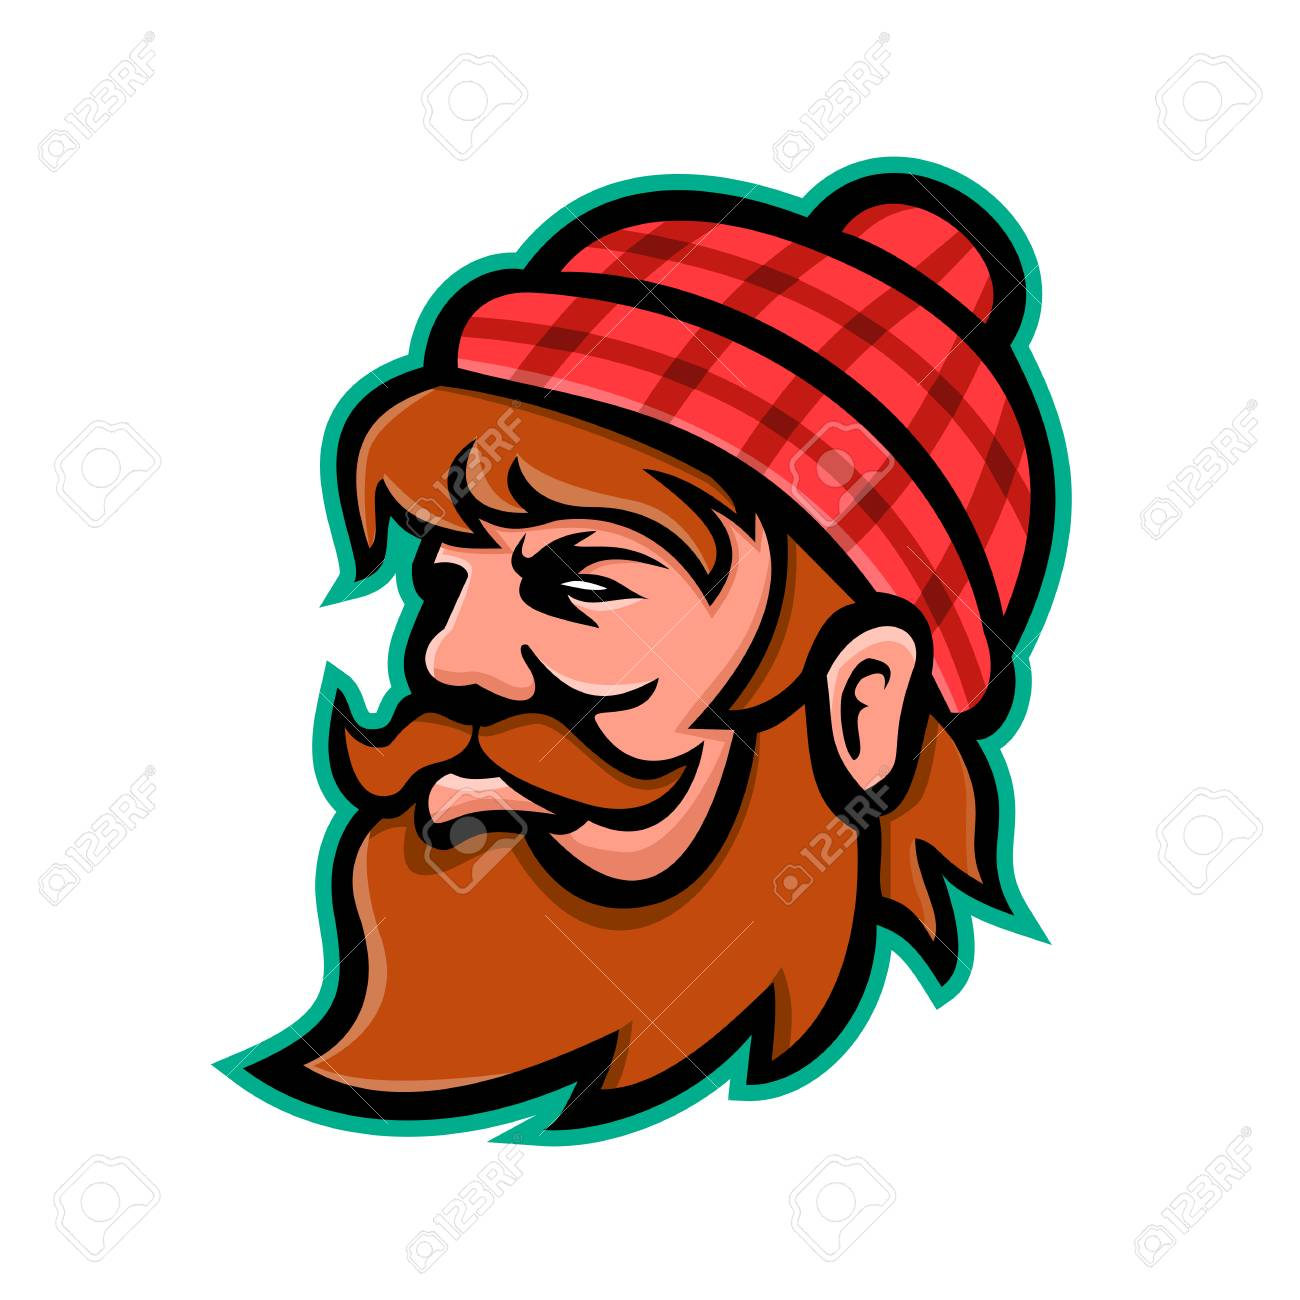 hight resolution of mascot icon illustration of head of paul bunyan a giant lumberjack in american folklore viewed